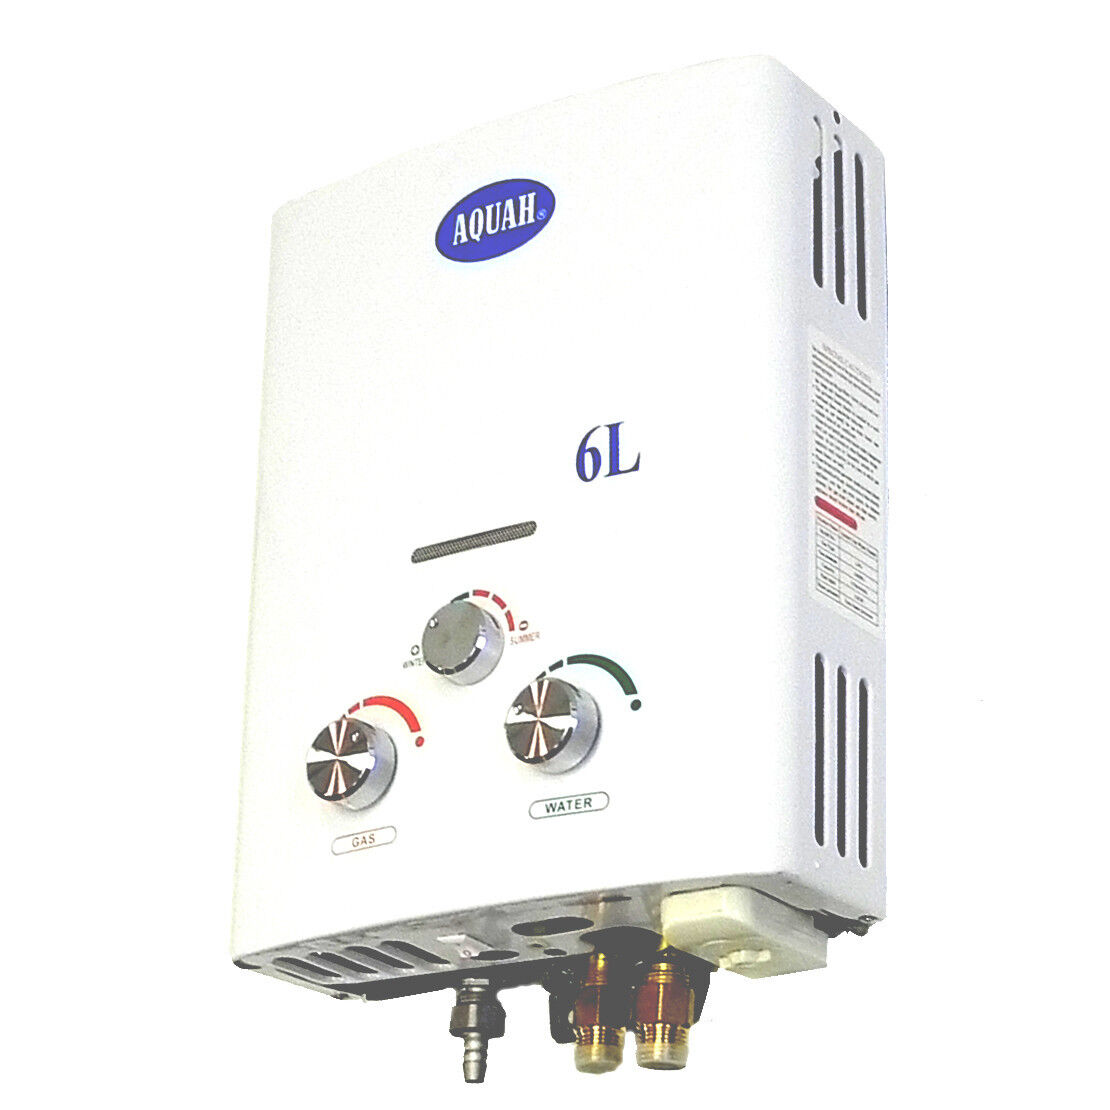 Aquah Outdoor Portable Propane Tankless Gas Water Heater